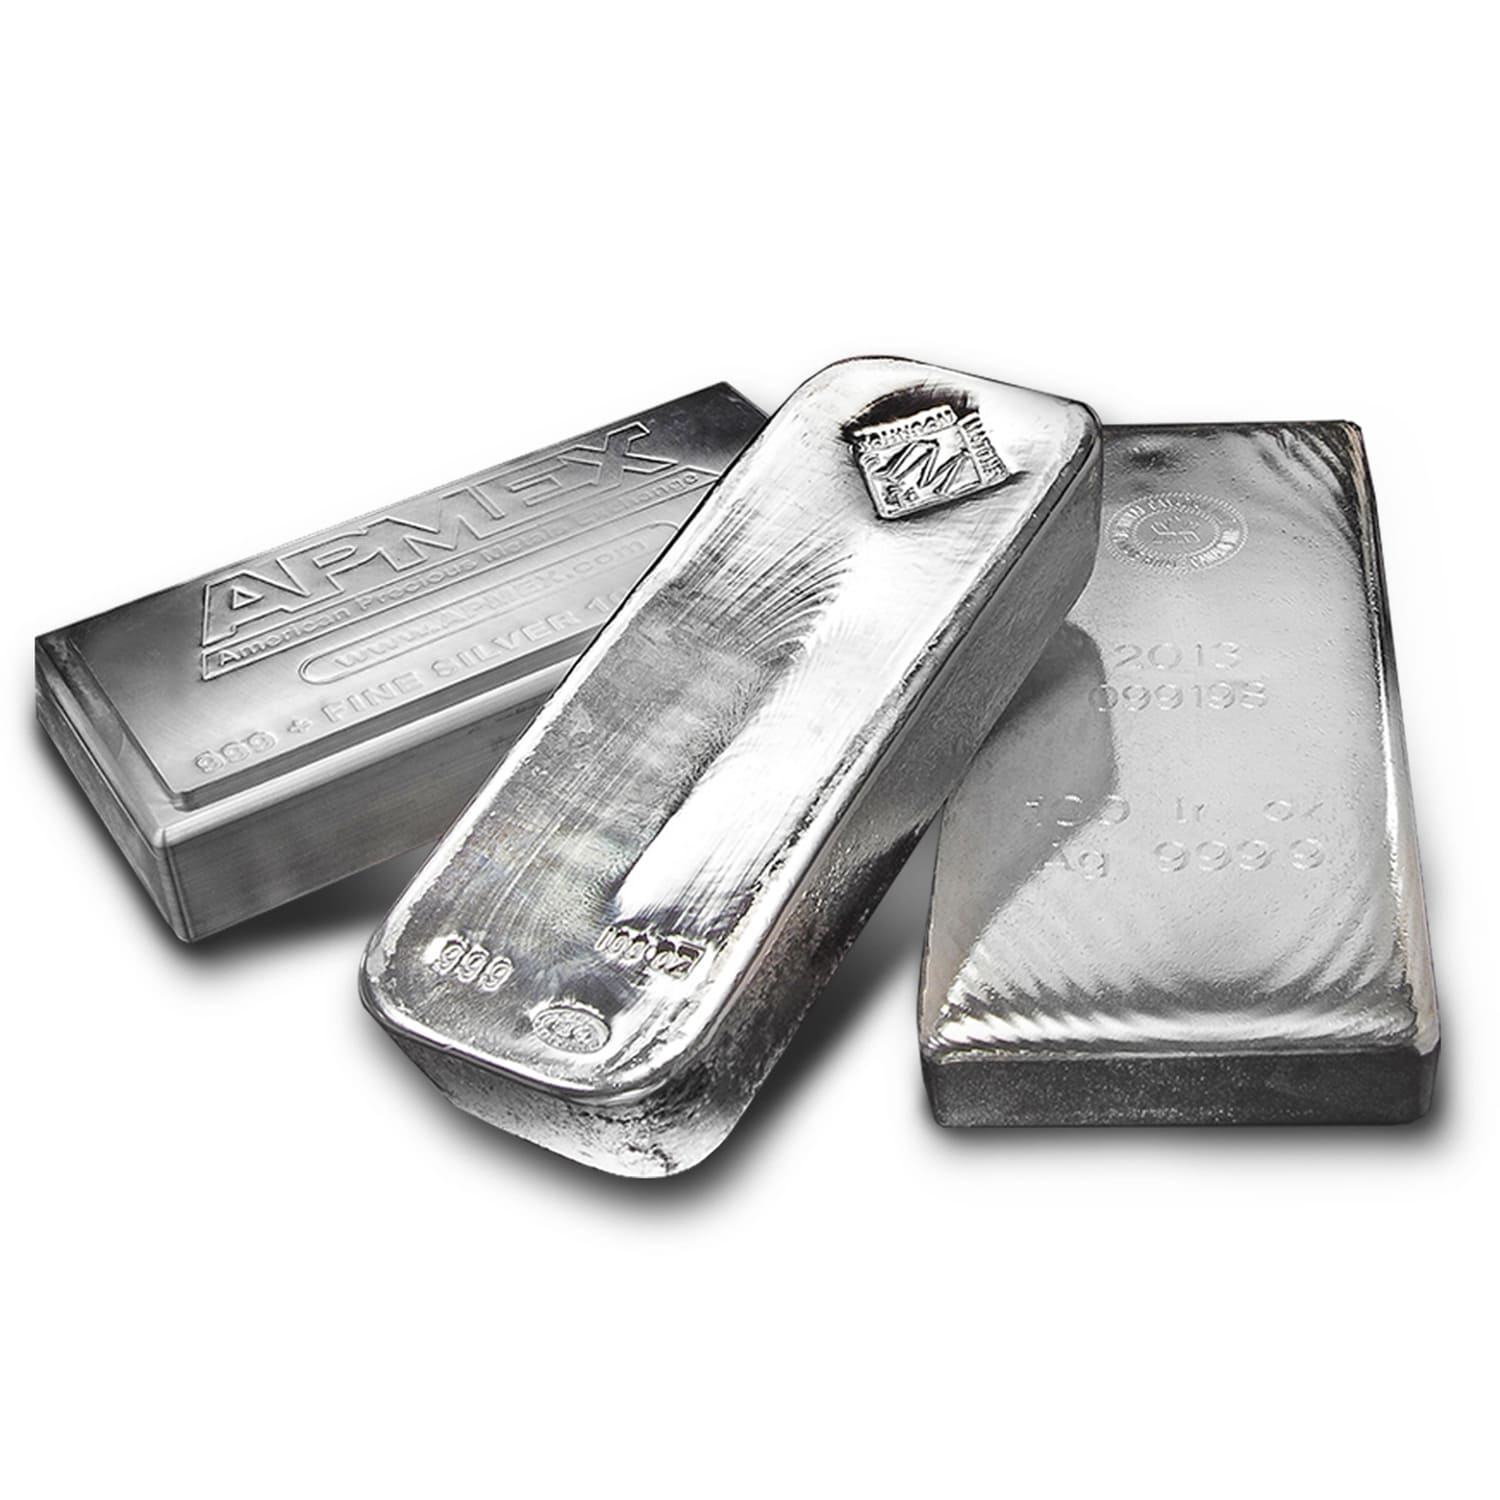 103.00 oz Silver Bars - Secondary Market